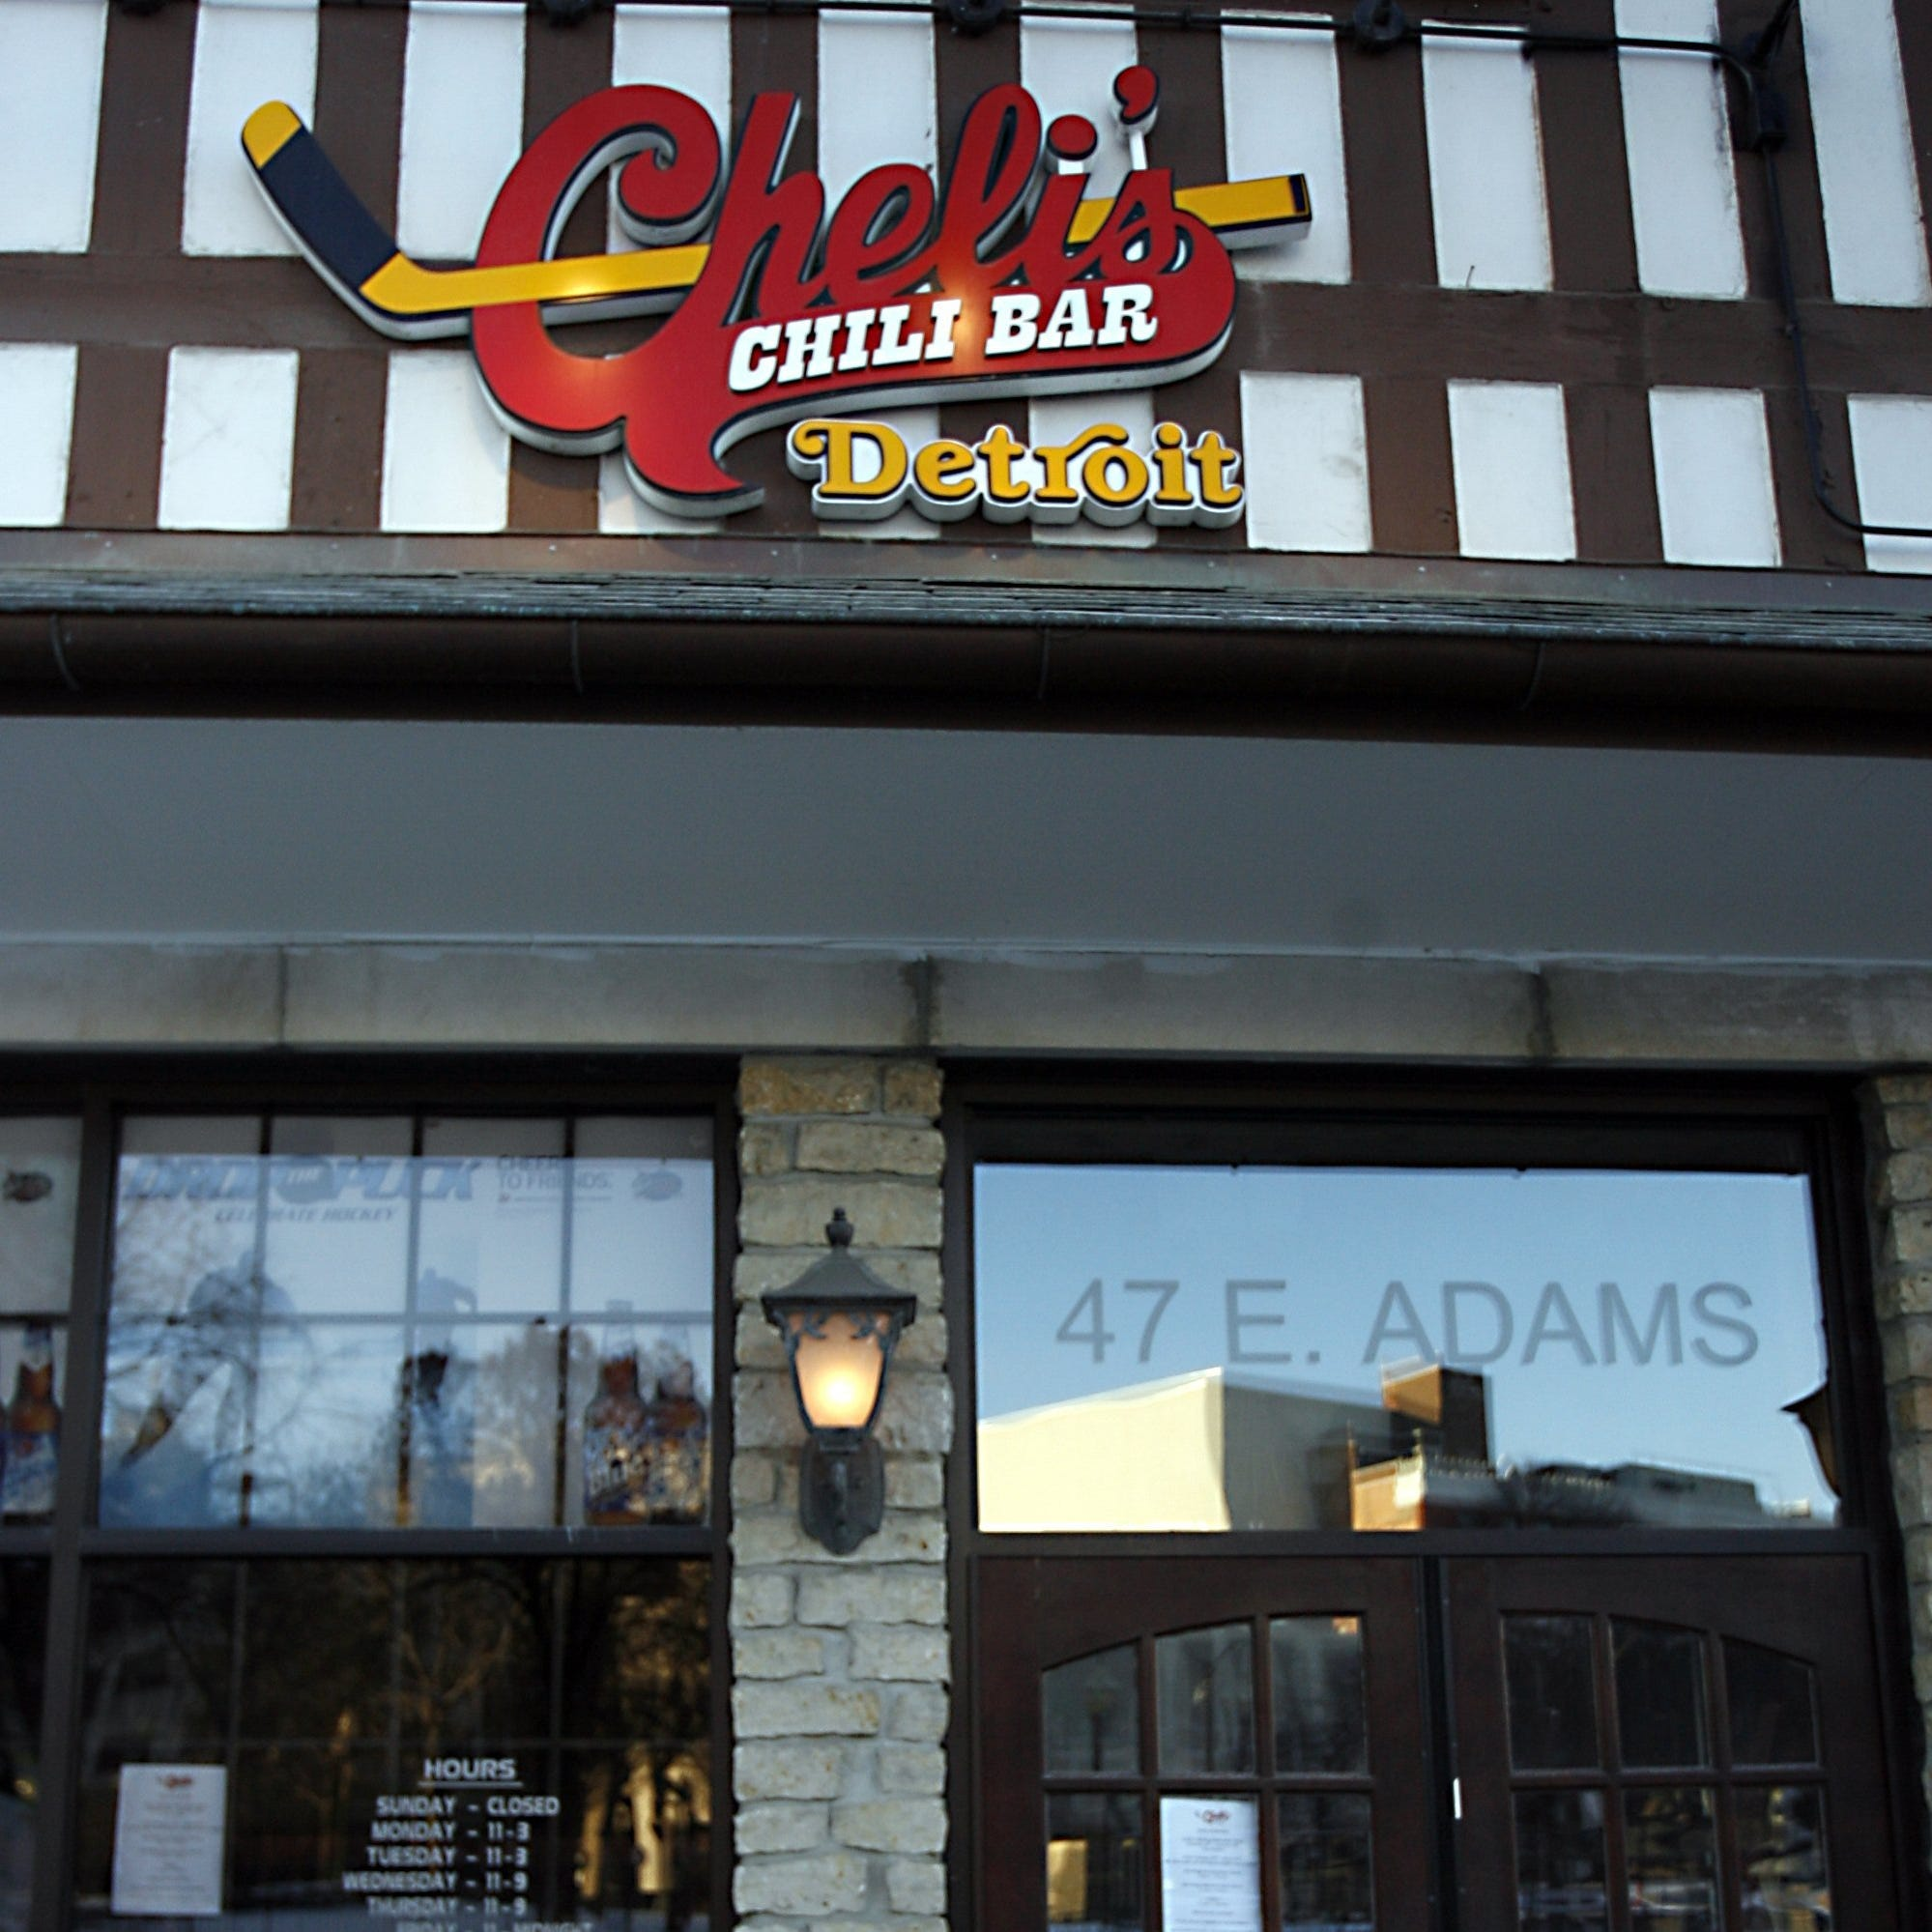 Cheli's Chili Bar in Detroit to close later this month